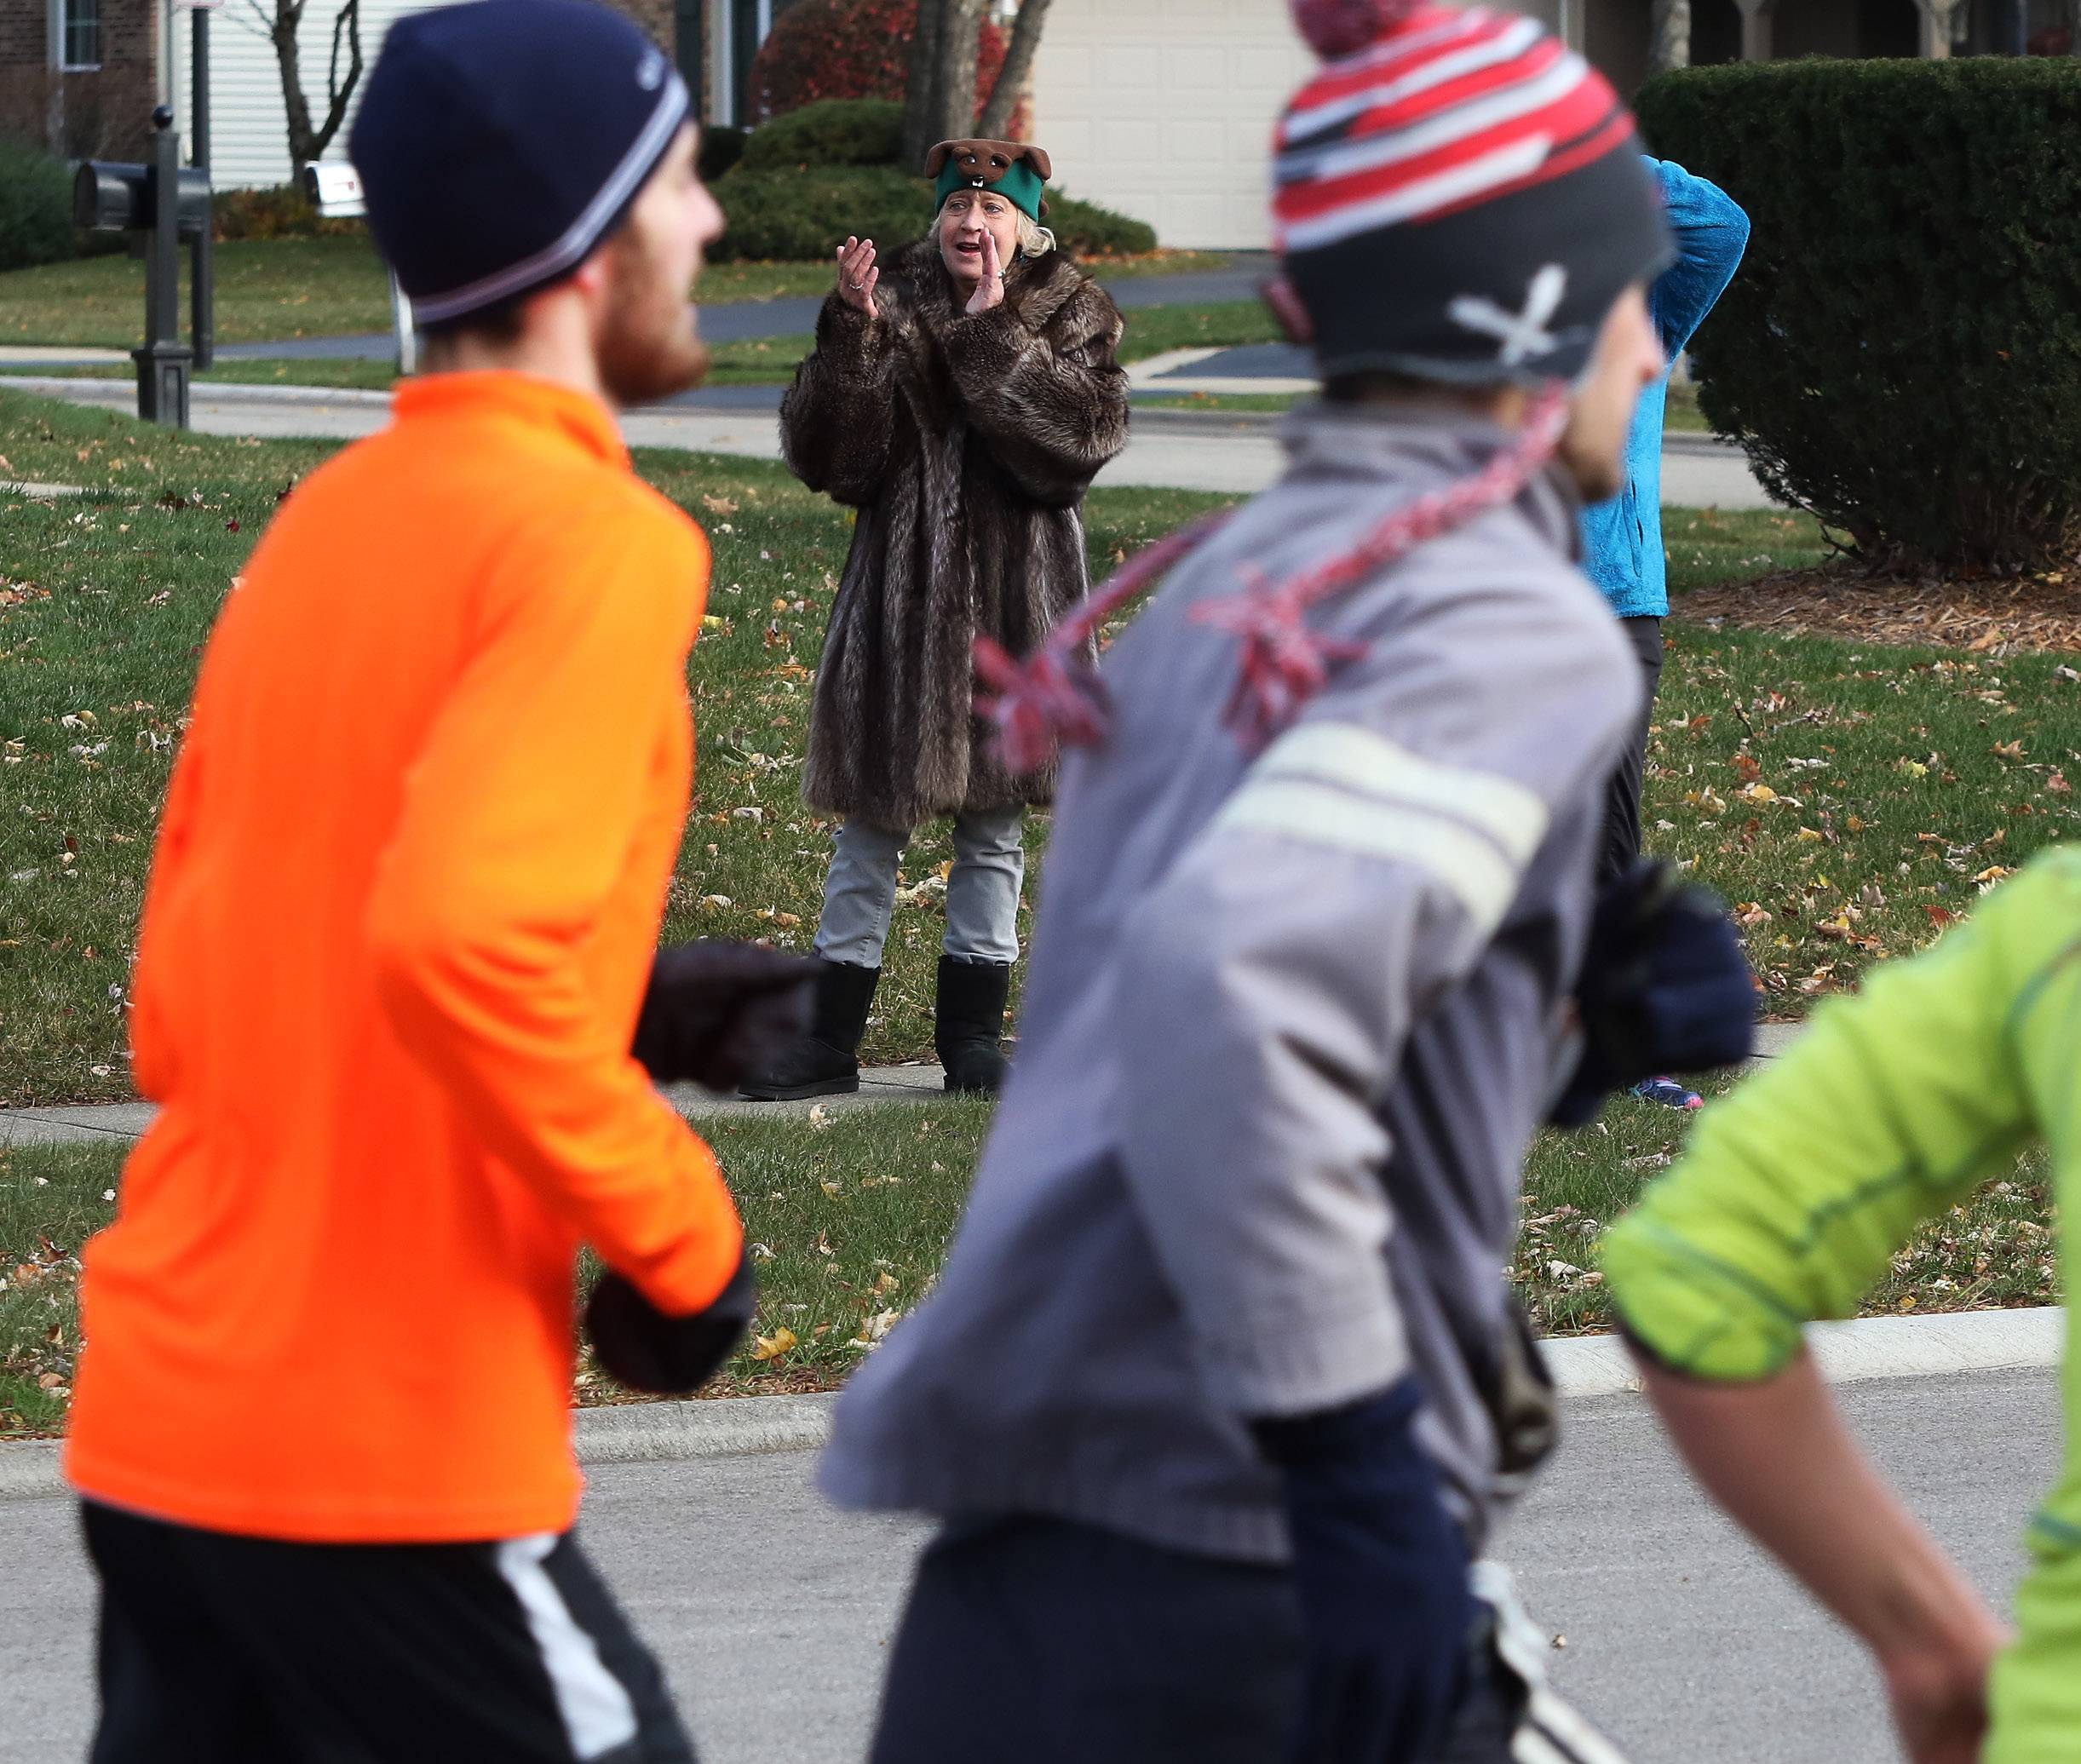 Beverly Wargo of Park Ridge cheers on the runners during the Hoofin' 4 Hardy 5k race Sunday in Palatine. The money was a memorial for Joshua Jared Hardy who died in 2009 to support free testing at local high schools for hypertrophic cardiomyopathy.